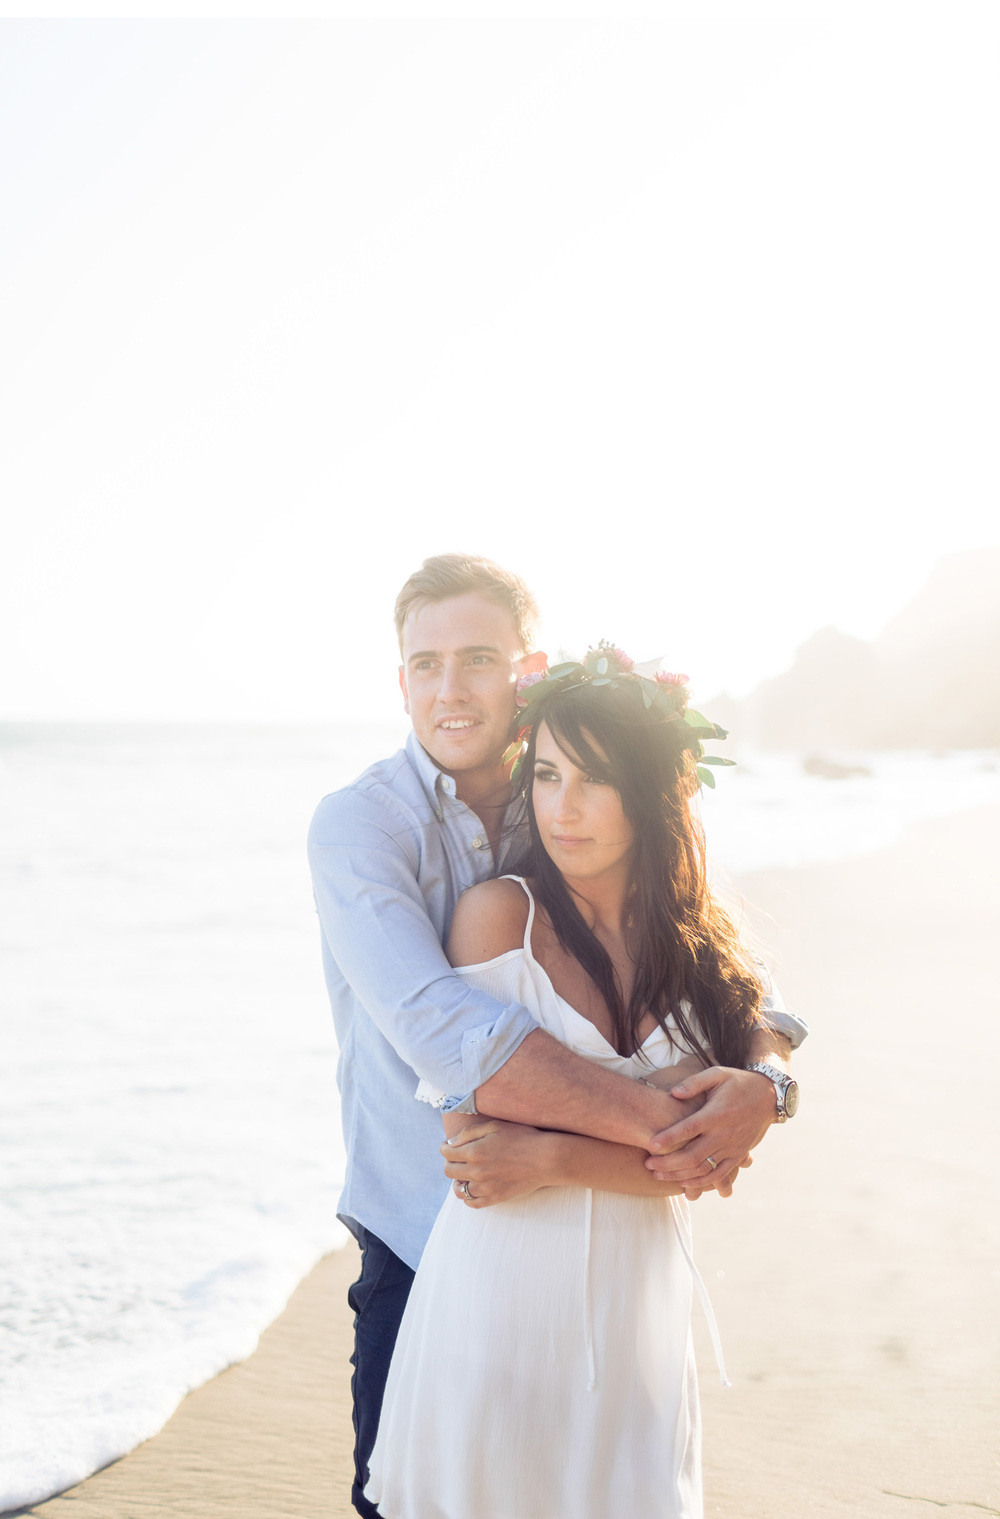 Malibu-California-Wedding-Photographer-Natalie-Schutt-Photography_03.jpg